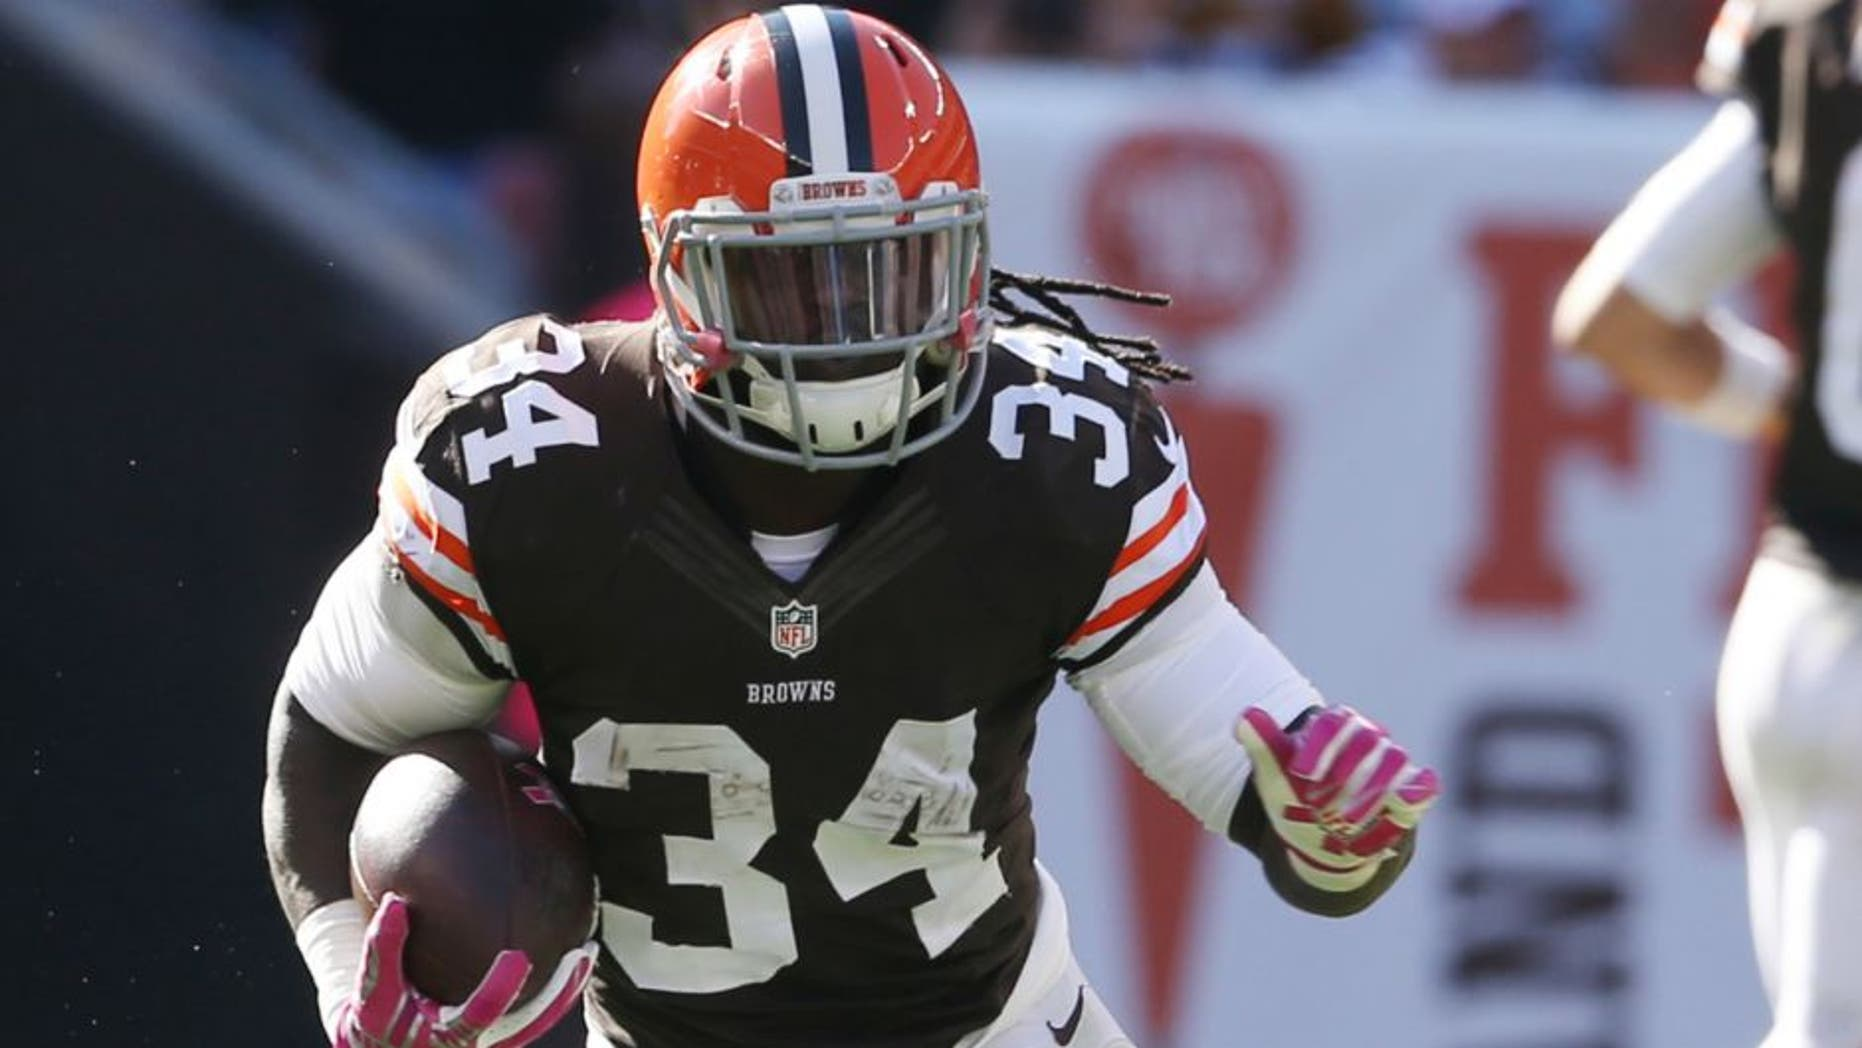 e688cab6 NFL Quick Hits: Browns RB Crowell has 'edge' to start | Fox News